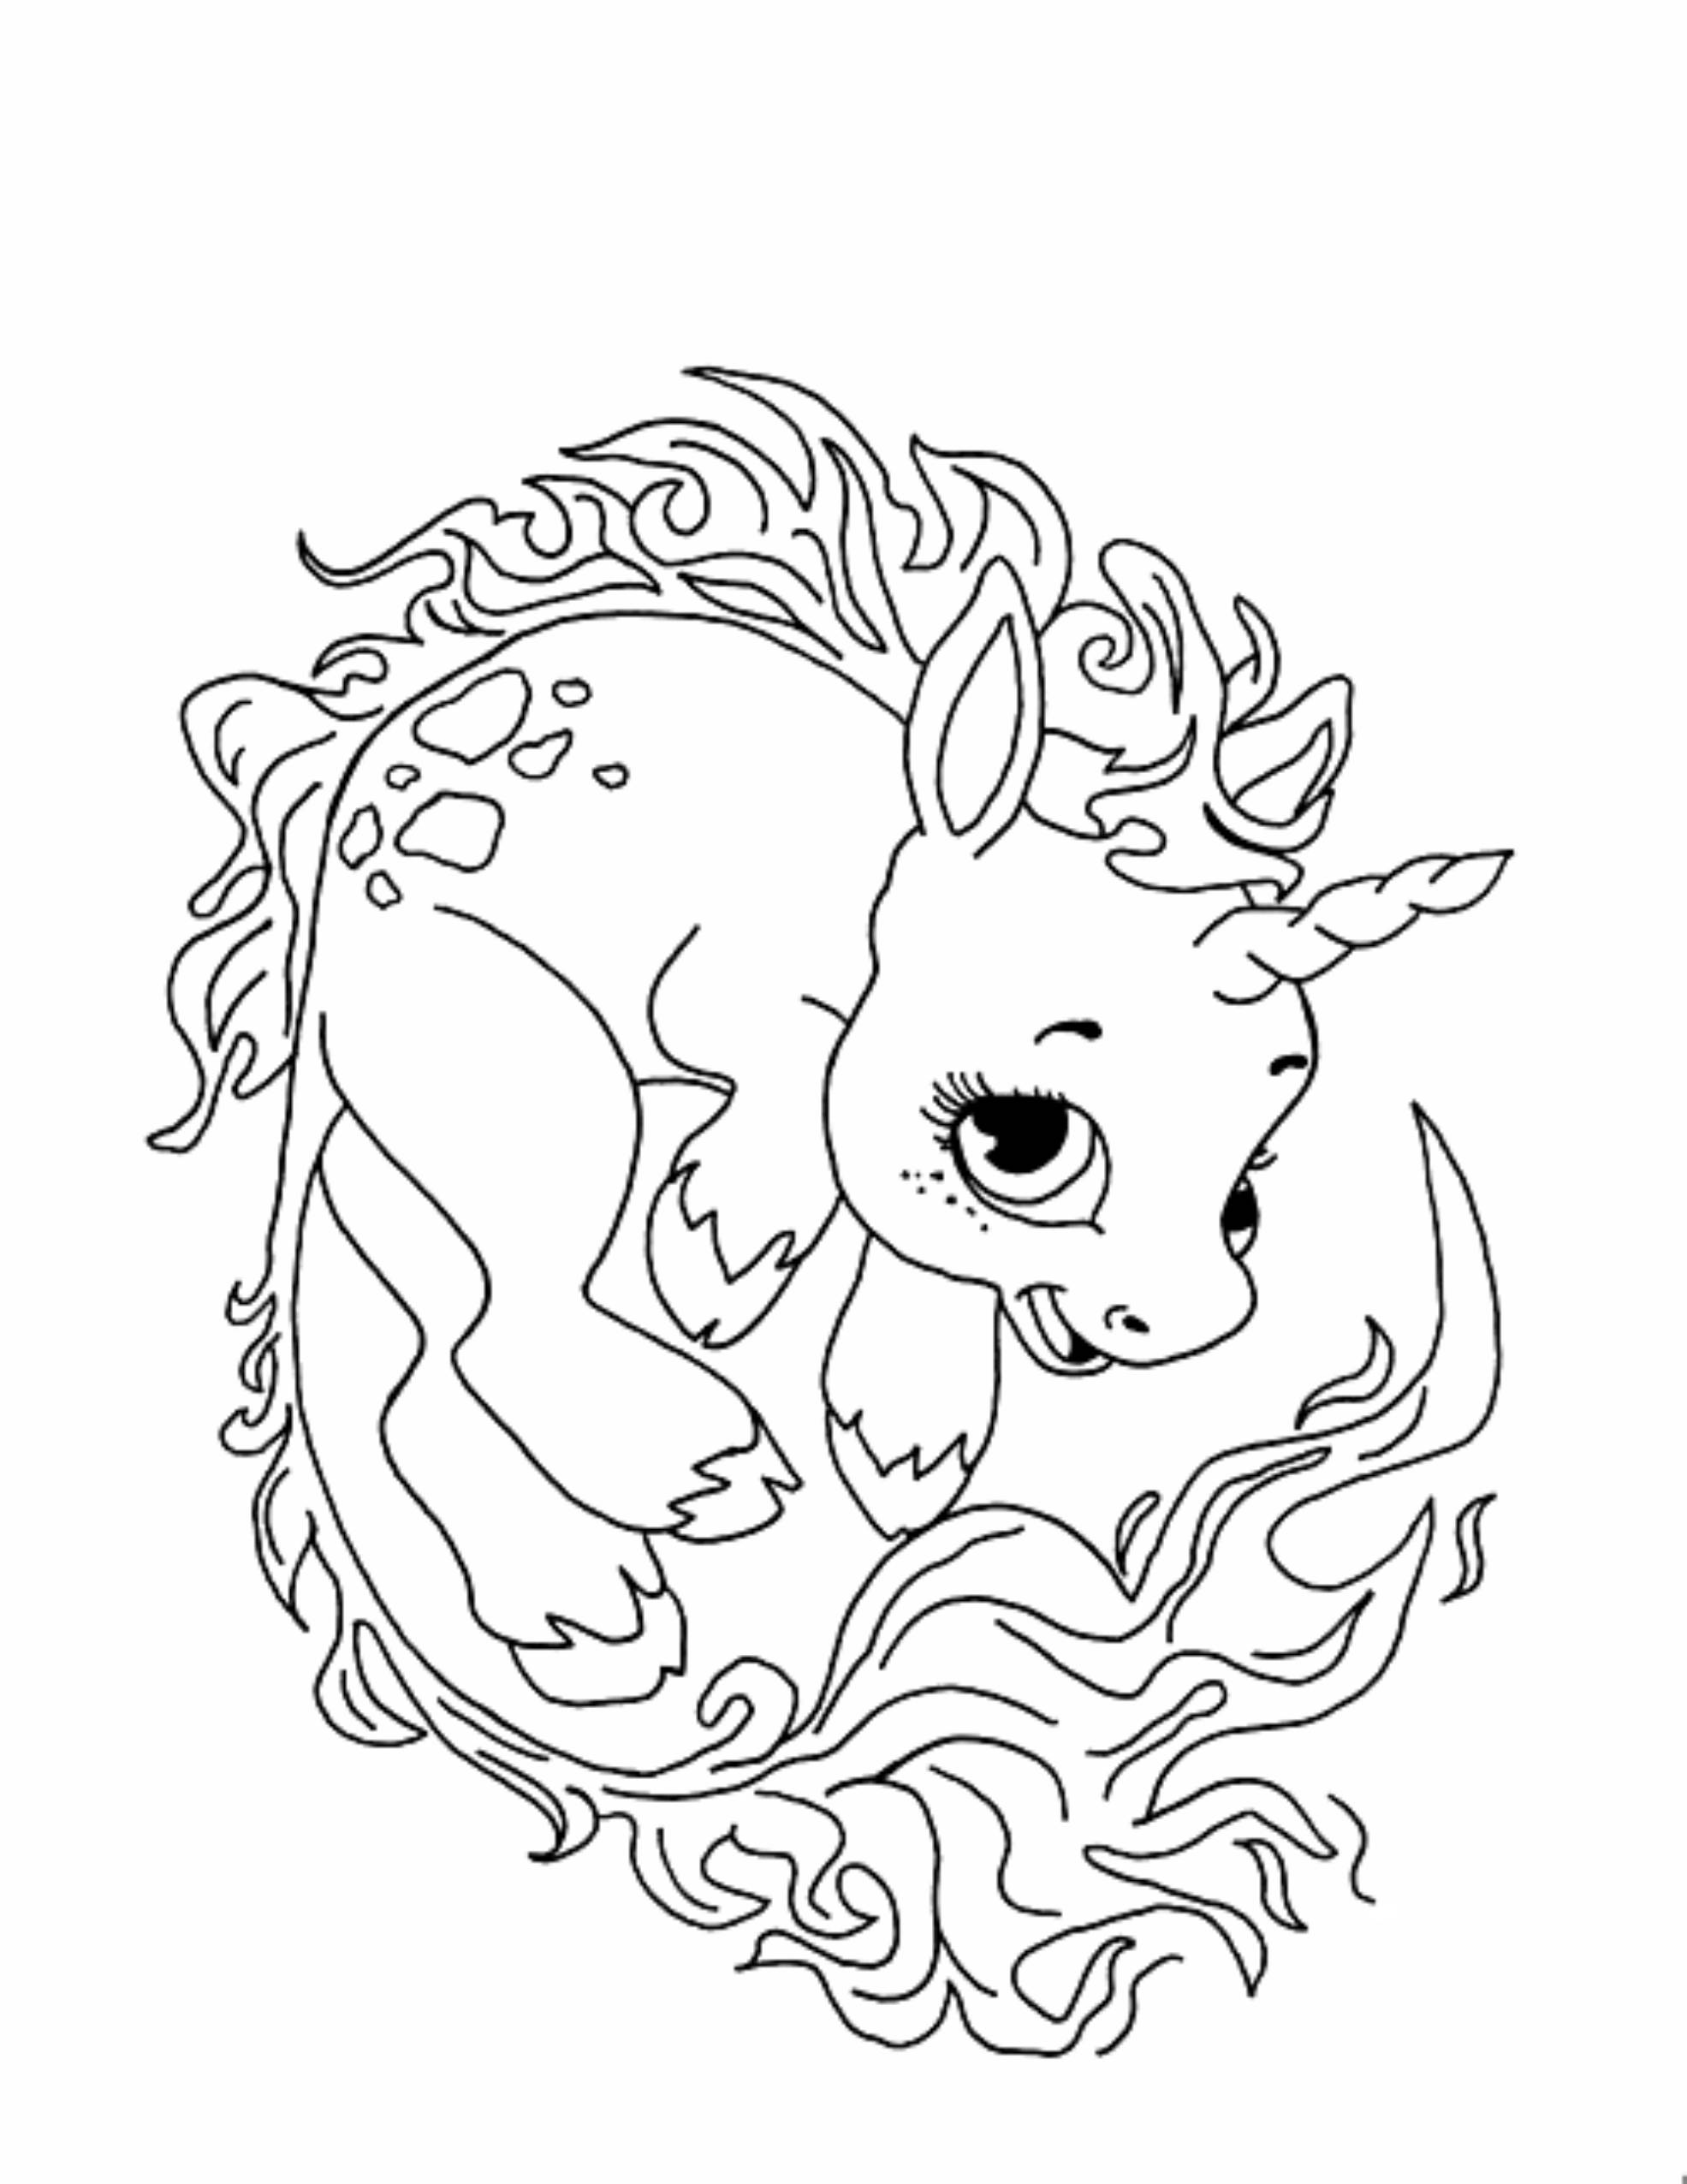 coloring unicorn kids drawing cute winged unicorn coloring page free printable kids unicorn drawing coloring